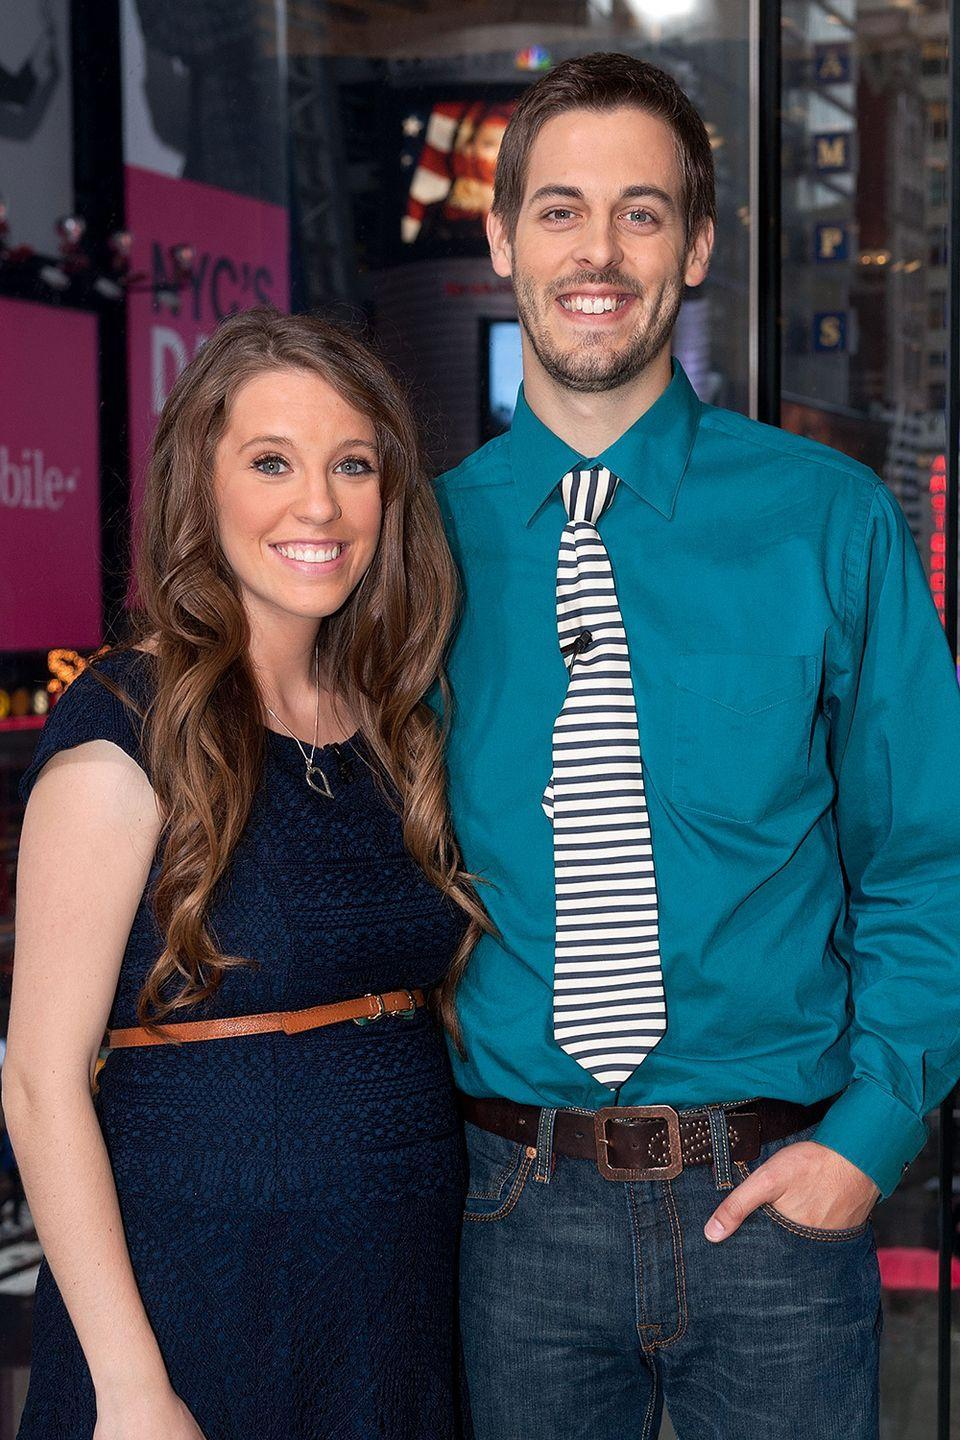 """<p>Jill Duggar, the first daughter on the show <em>19 Kids and Counting </em>to get married, waited until that day for any kind of intimacy with her partner—which was expected by her family. The Duggars require their kids to enter into a """"courtship"""" with a partner, during which they can only give side-hugs. Jill <a href=""""http://www.intouchweekly.com/posts/like-a-virgin-9-stars-who-waited-until-marriage-to-have-sex-46796/photos/jill-duggar-66418#photo-anchor"""" rel=""""nofollow noopener"""" target=""""_blank"""" data-ylk=""""slk:hadn't even kissed"""" class=""""link rapid-noclick-resp"""">hadn't even kissed</a> her now-husband Derick before getting married.</p><p>""""We're just really trying to keep our relationship focused not on the physical but really just more on communication and continuing to learn more about each other. We're saving our first kiss and things beyond that for our wedding,"""" she said in an interview.</p>"""